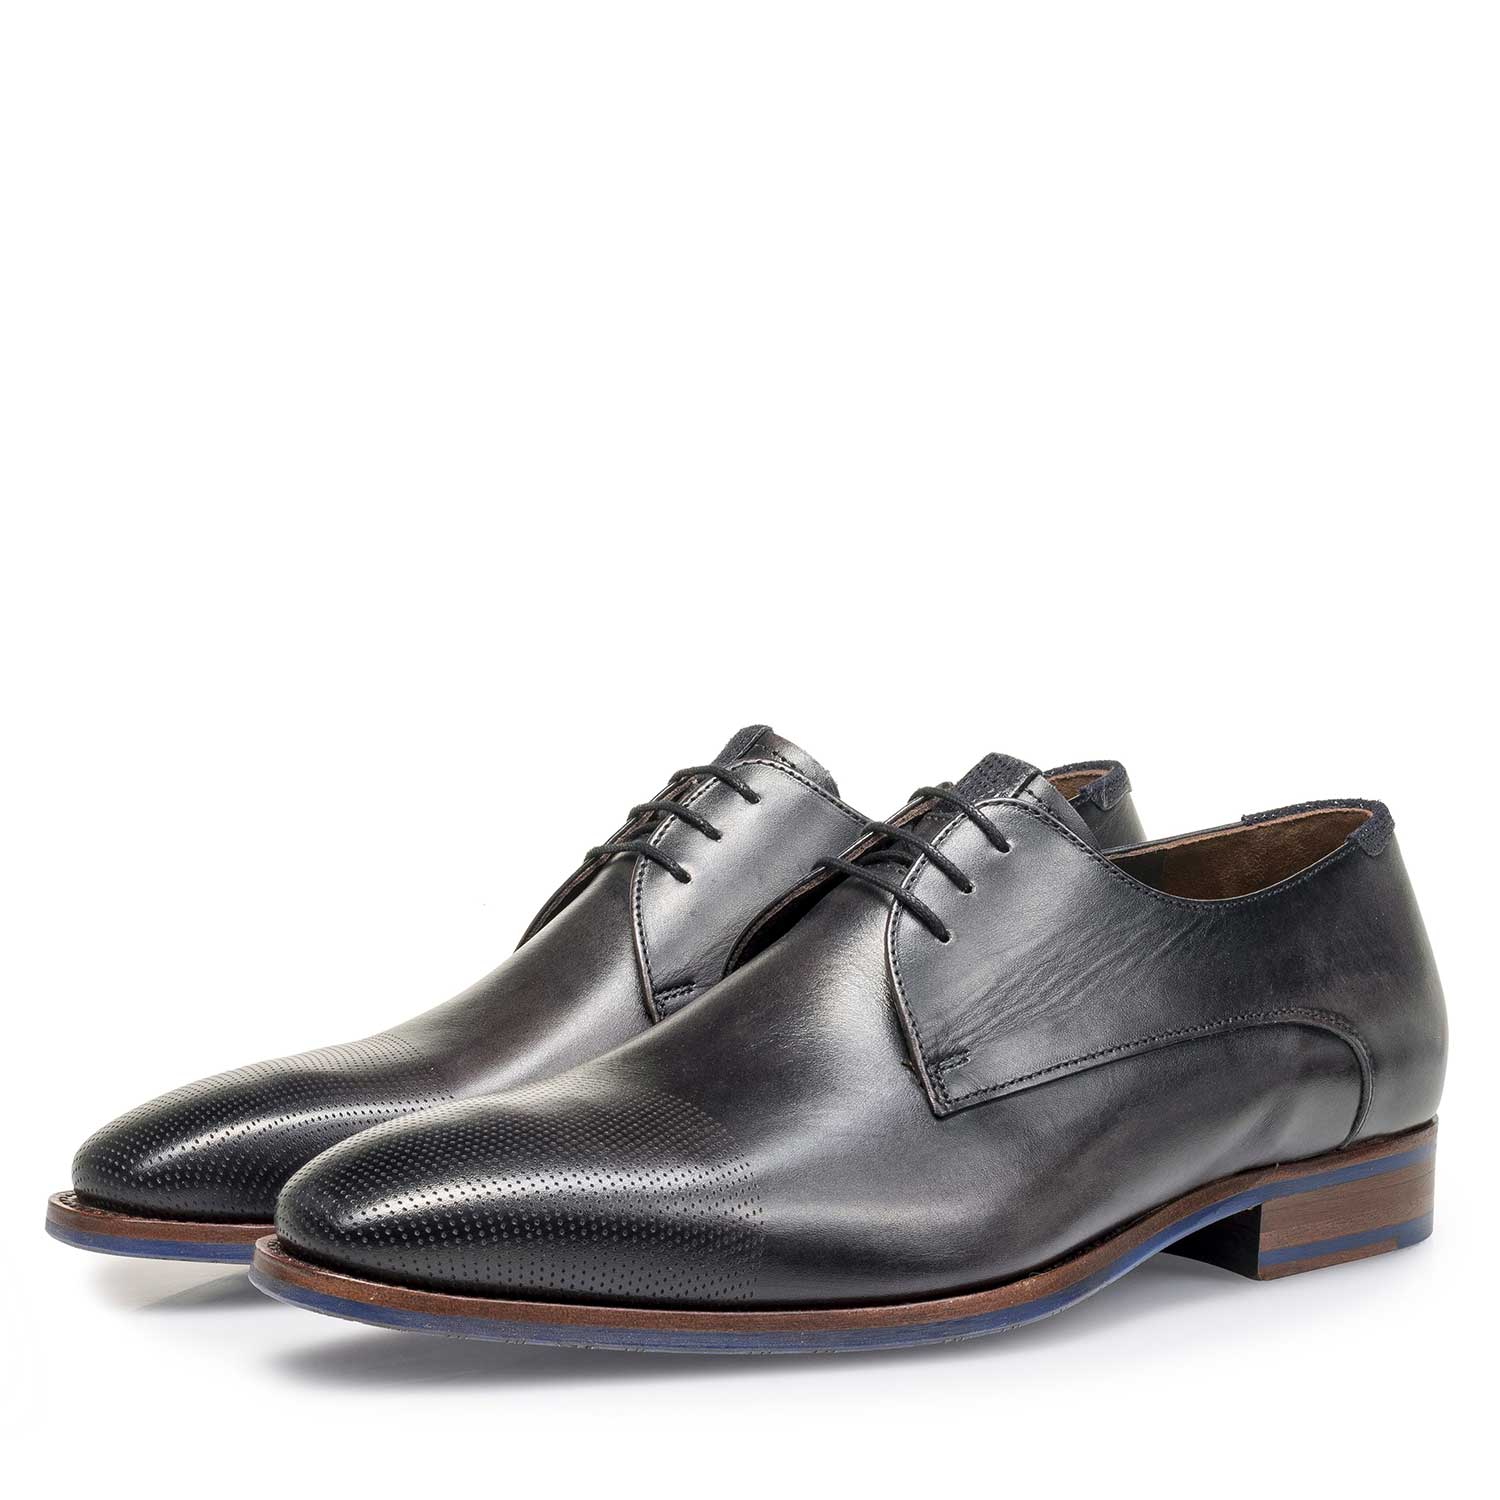 18088/02 - Grey calf leather lace shoe